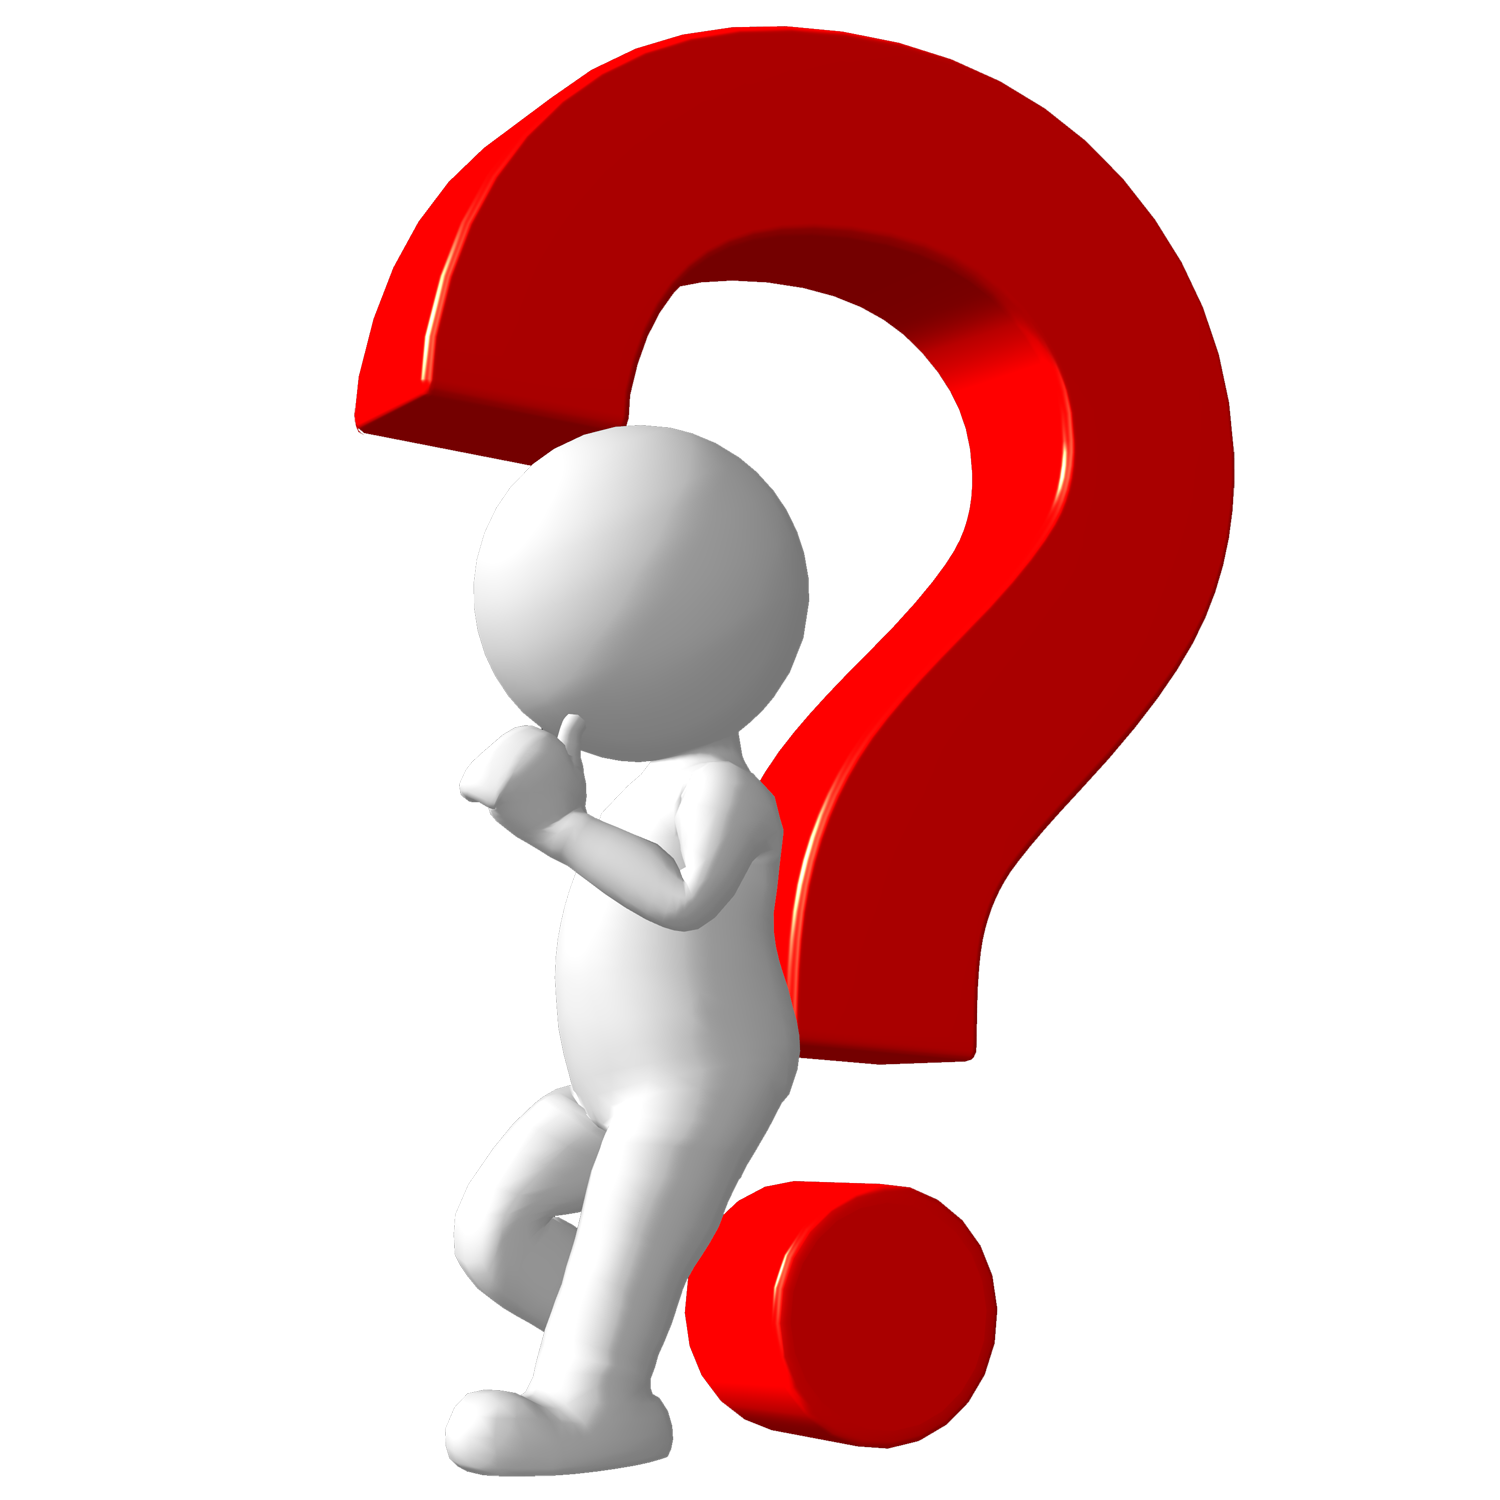 Clipart free question. Cliparts about questions kid